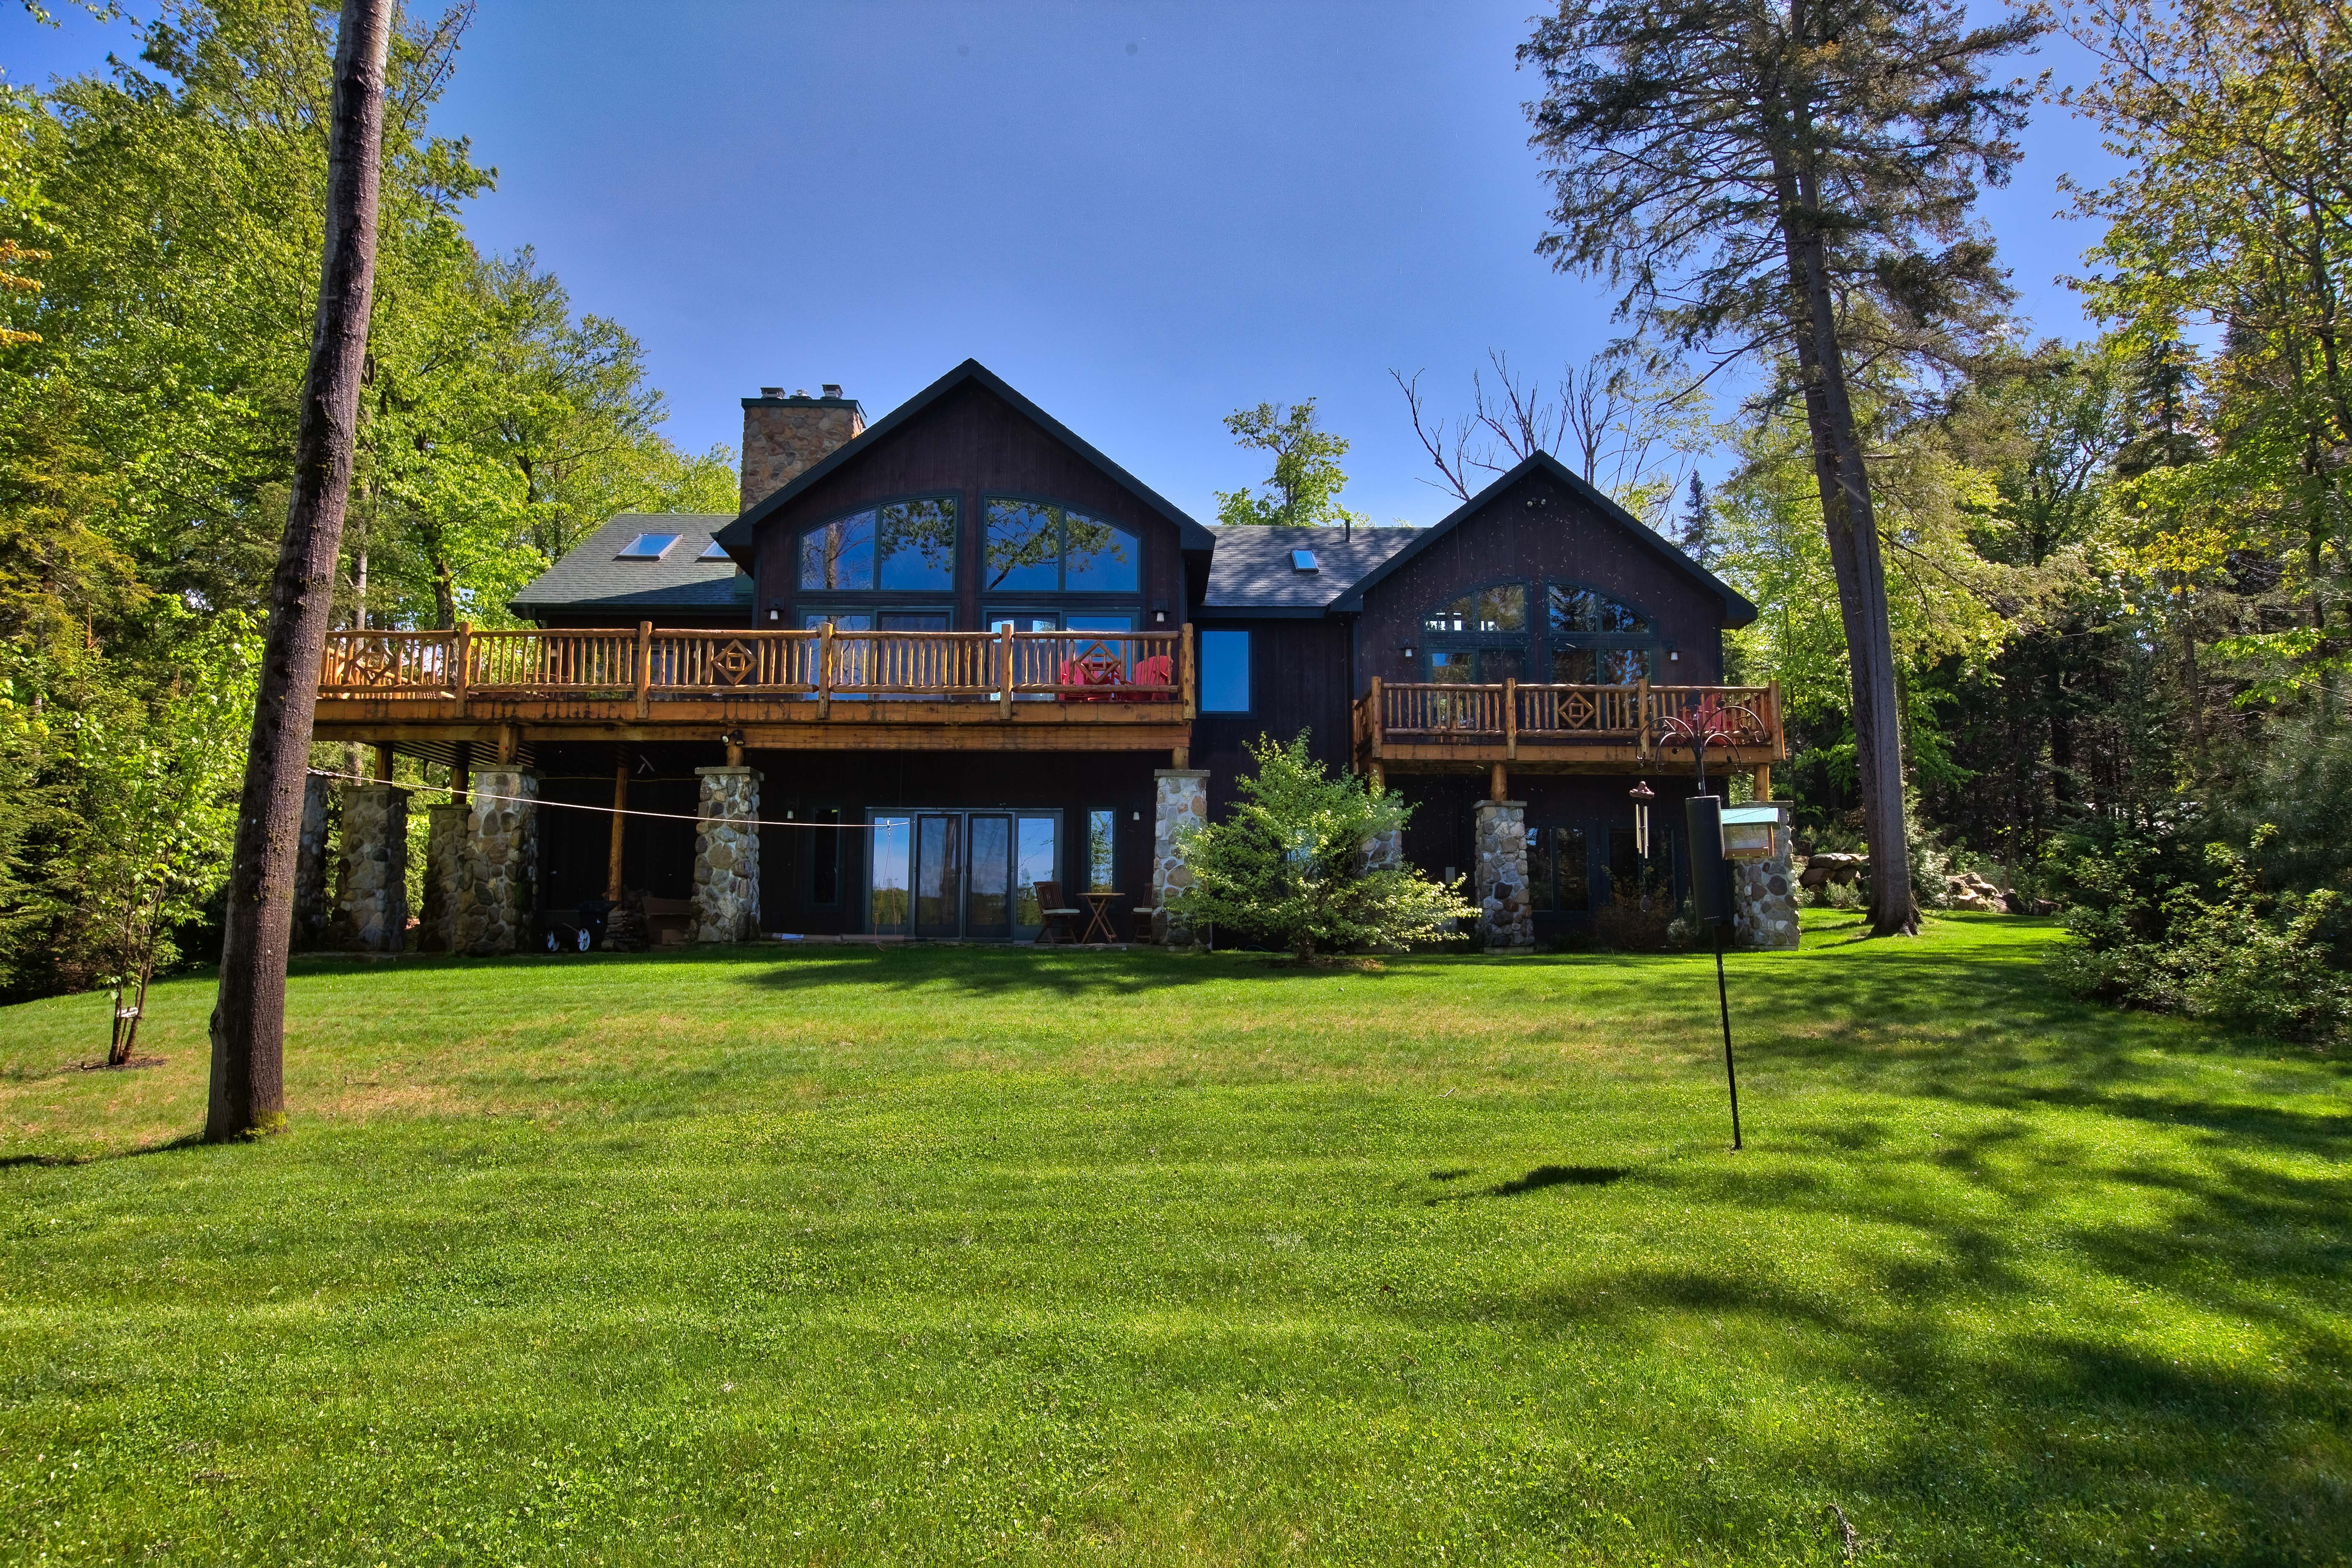 the complimentary boats rentals kayaks or boat adirondack you rent tranquility cottage acre our cabin of adirondacks let paddle canoes this enjoy kayakers lake and in htm an row prohibits motorboats summer woods cabins